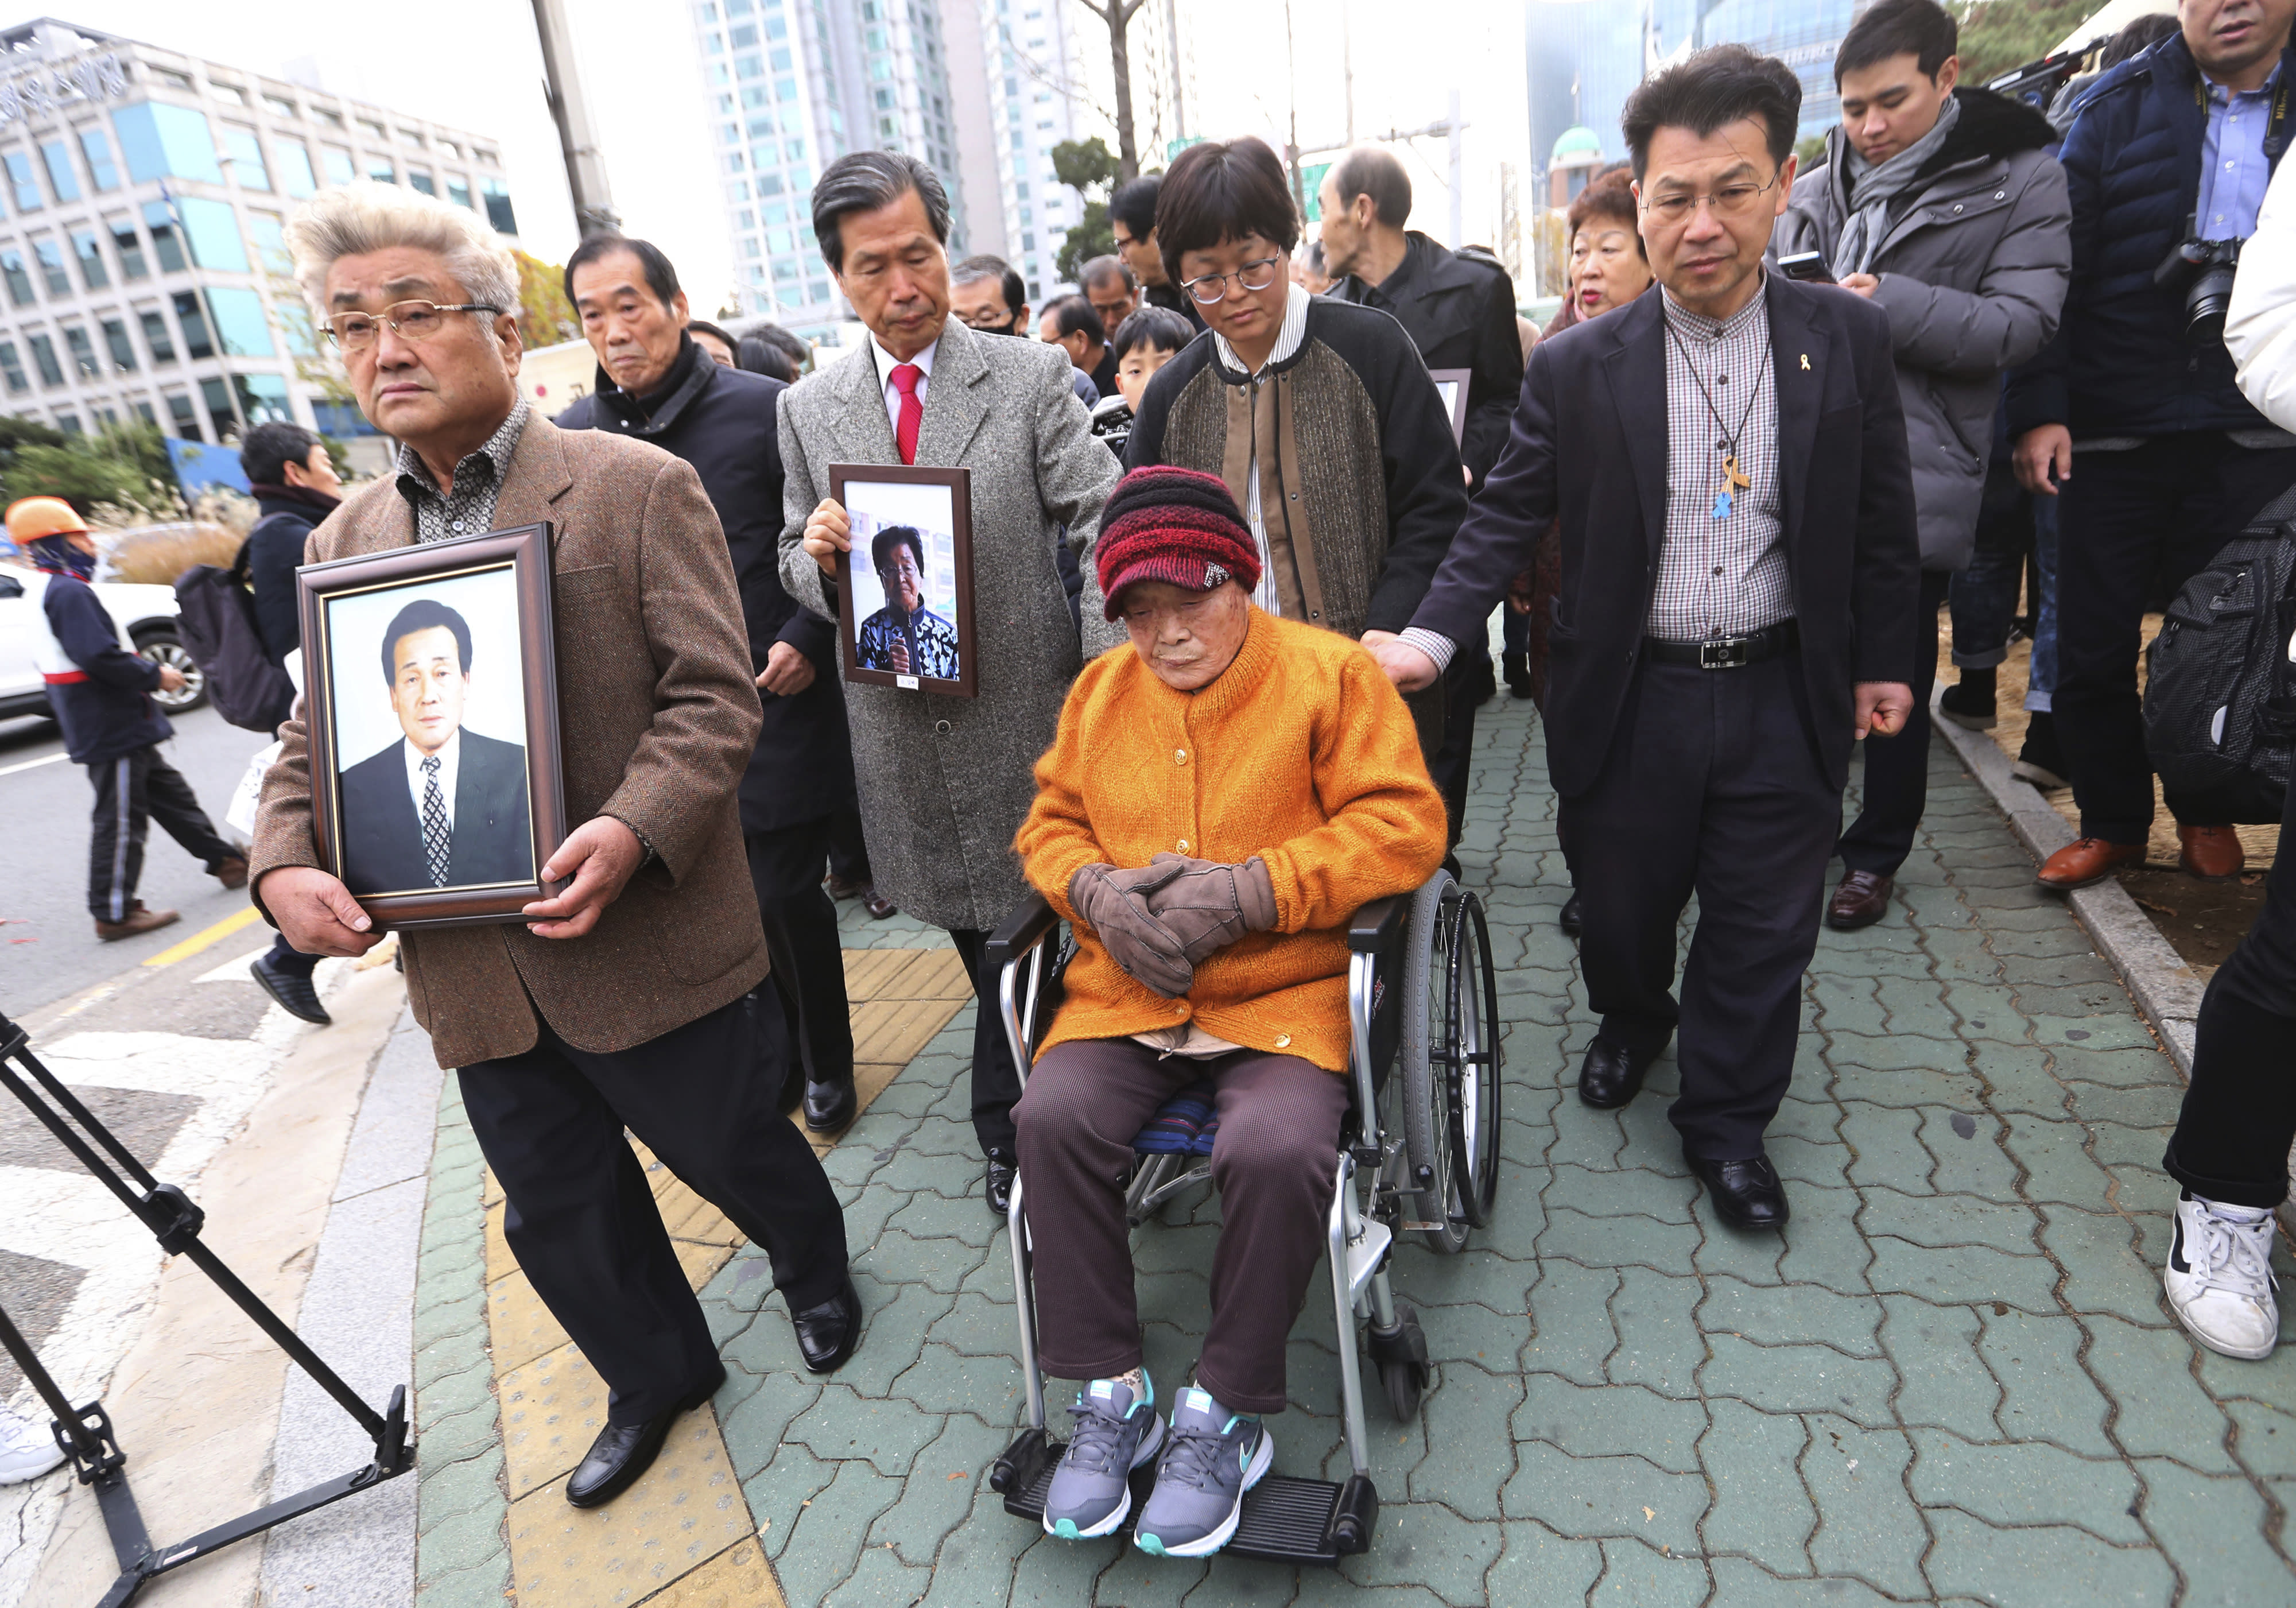 FILE - In this Nov. 29, 2018, file photo, Kim Sung-joo, bottom center, a victim of Japan's forced labor, arrives at the Supreme Court's in Seoul, South Korea. South Korea's top court ordered a Japanese company to compensate 10 Koreans for forced labor during Tokyo's 1910-45 colonial rule of the Korean Peninsula. The modern legacy of a dark chapter in Japan's history, when hundreds of thousands of people were brought from the Korean Peninsula and other Asian nations to work in logging, in mines, on farms and in factories as forced labor, lives on in the companies that came to dominate the Japanese economy after World War II. Many of those companies are still facing demands for compensation that they say were settled by treaty decades ago. (AP Photo/Ahn Young-joon, File)